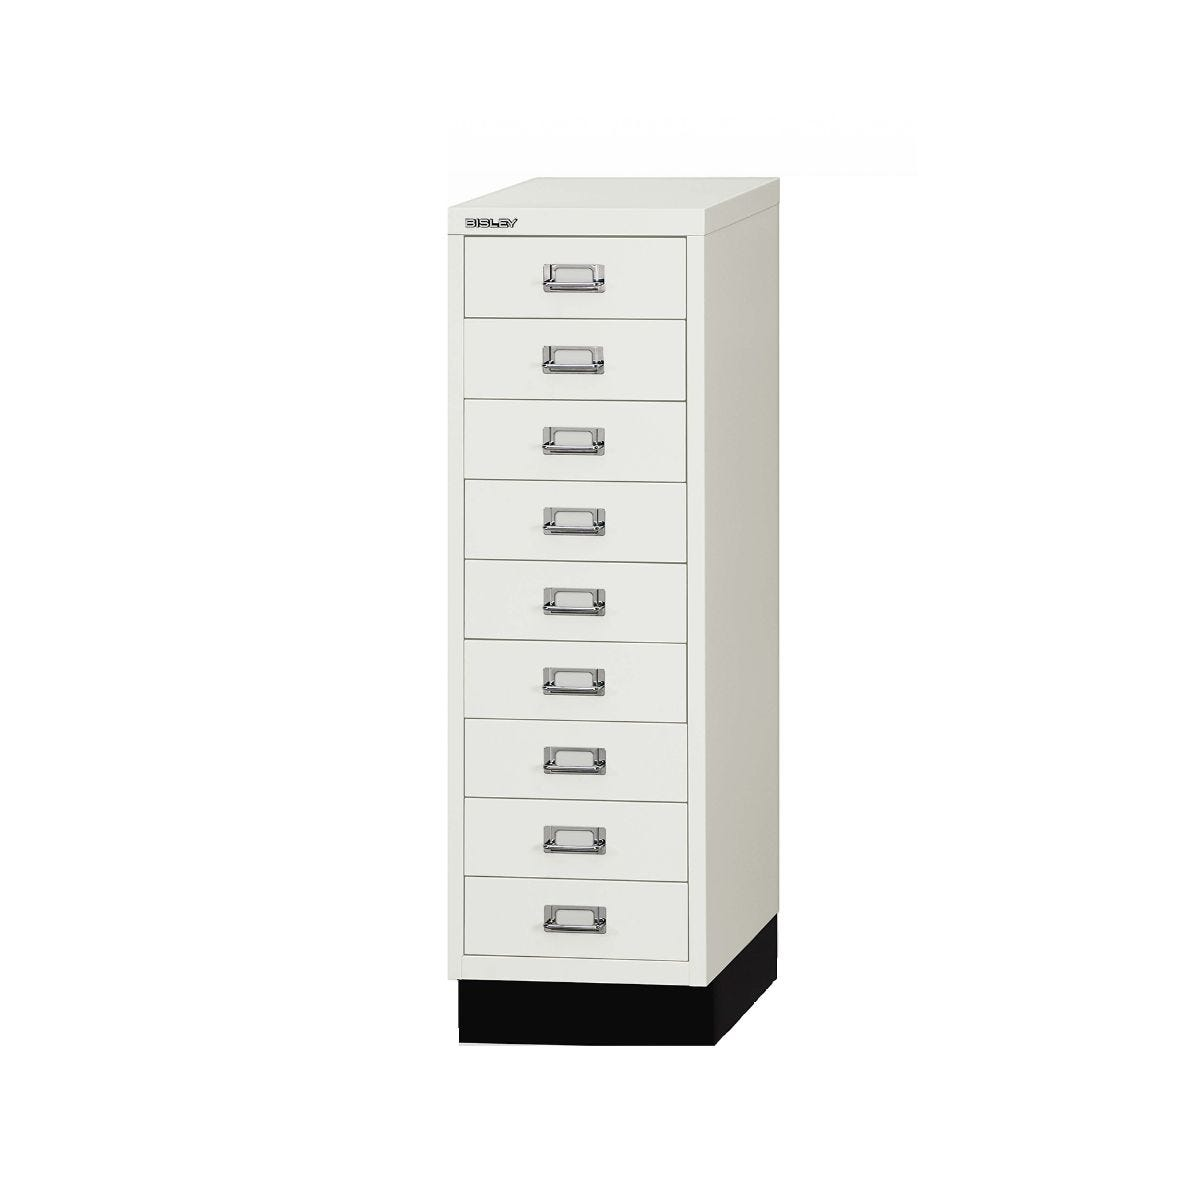 throughout black design side filing cabinets blue drawer grey x bisley cabinet proportions